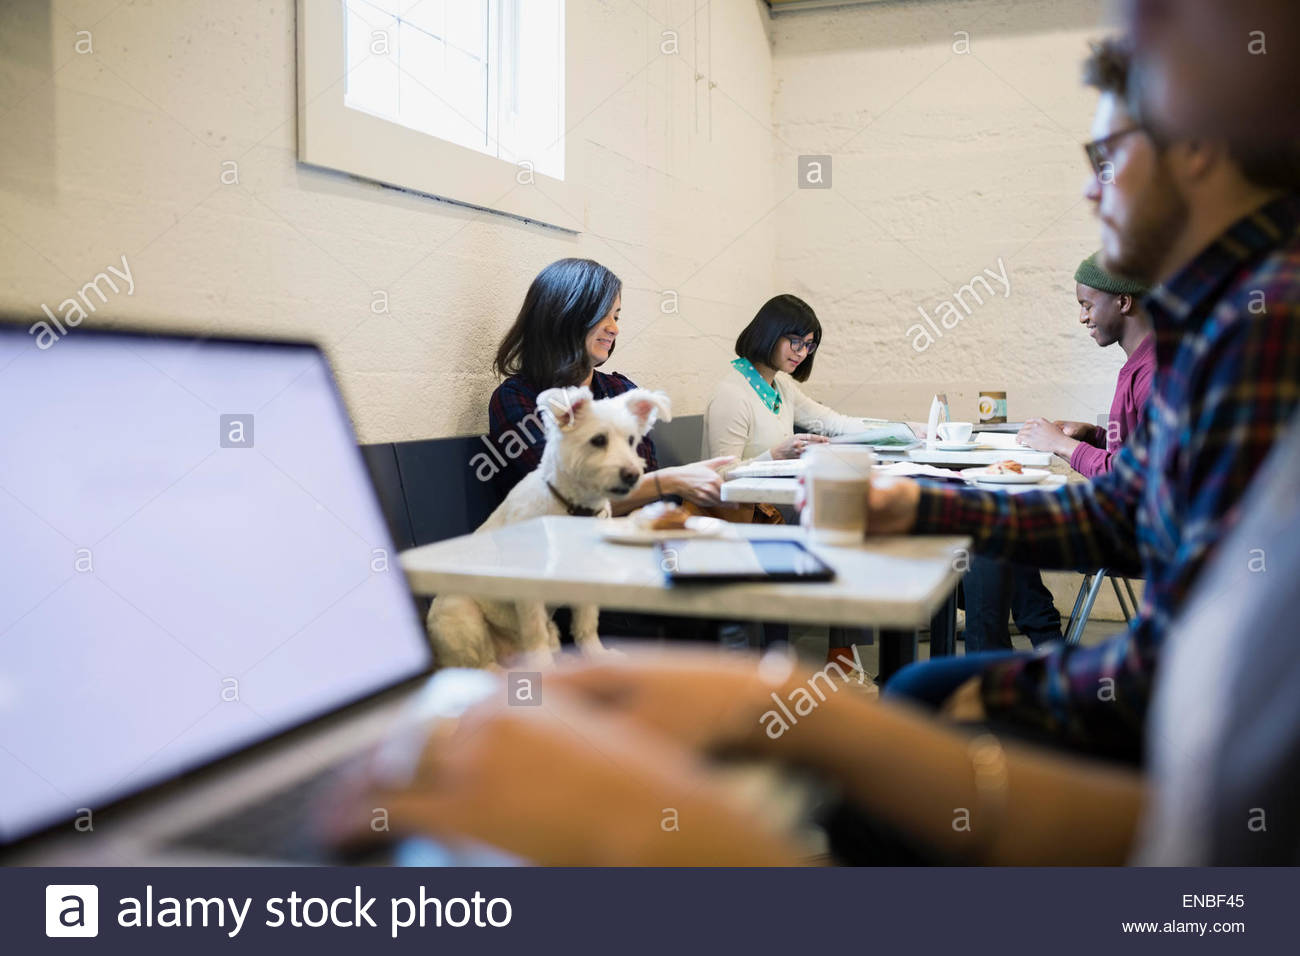 People and dog at tables in cafe - Stock Image